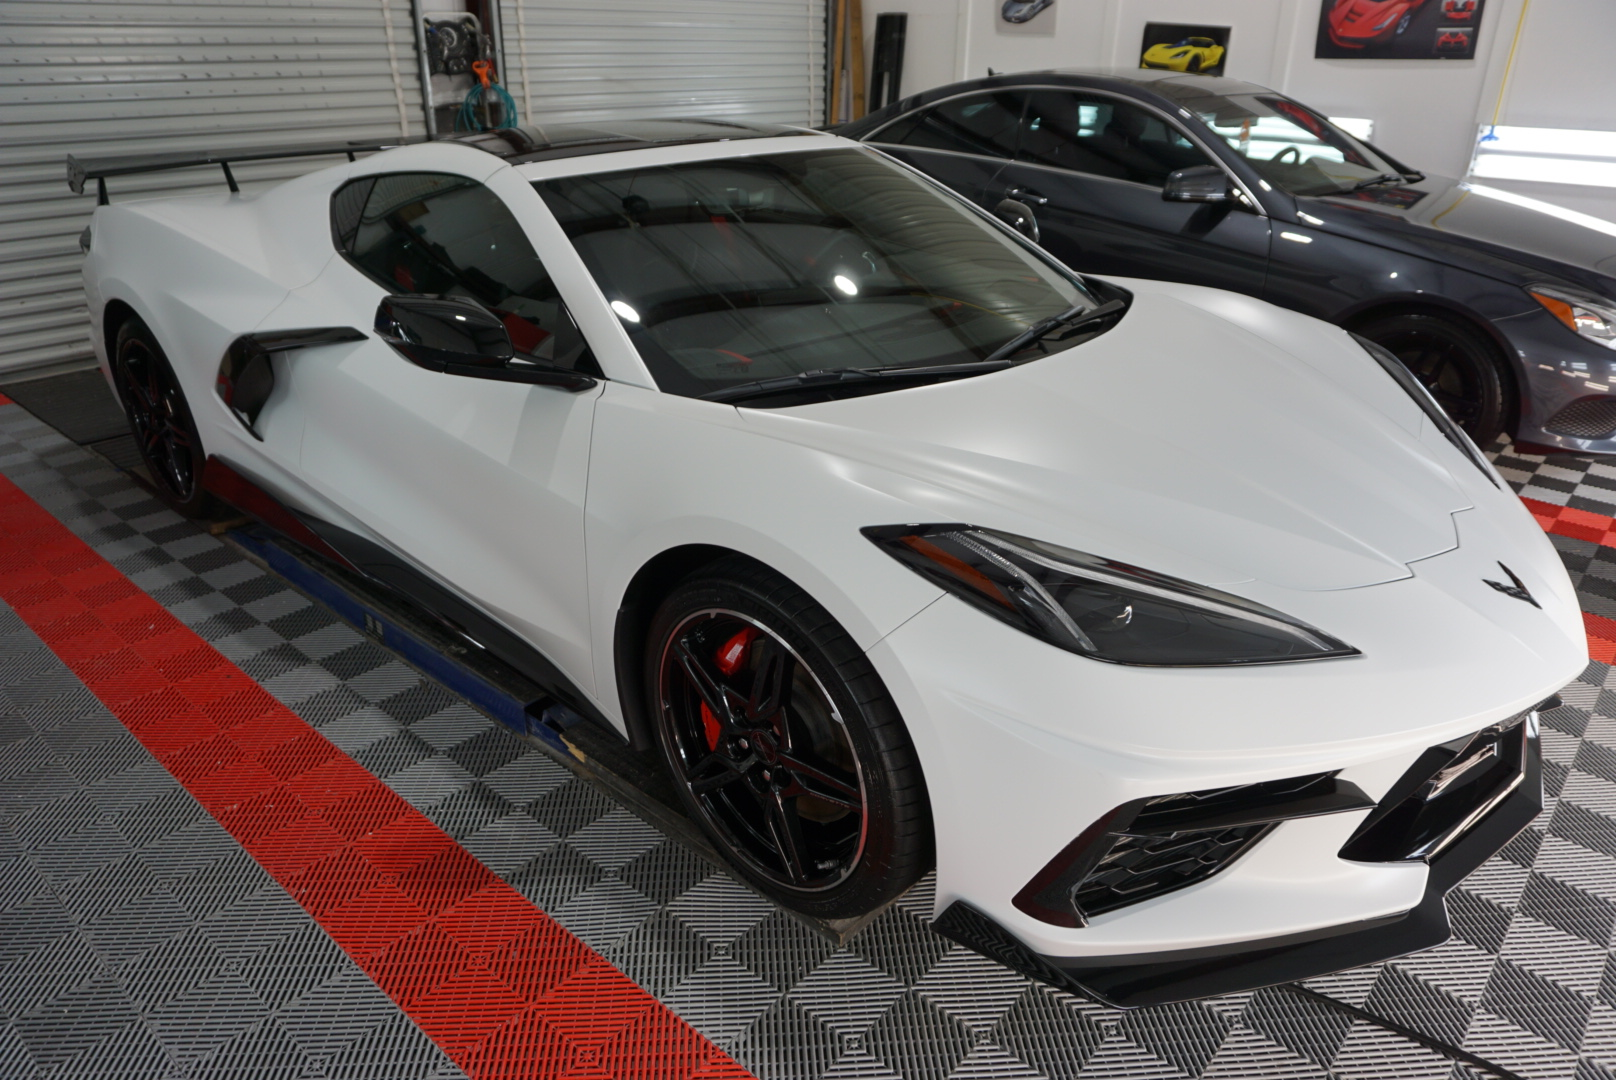 Ceramic Coating of a 2020 Chevrolet Corvette